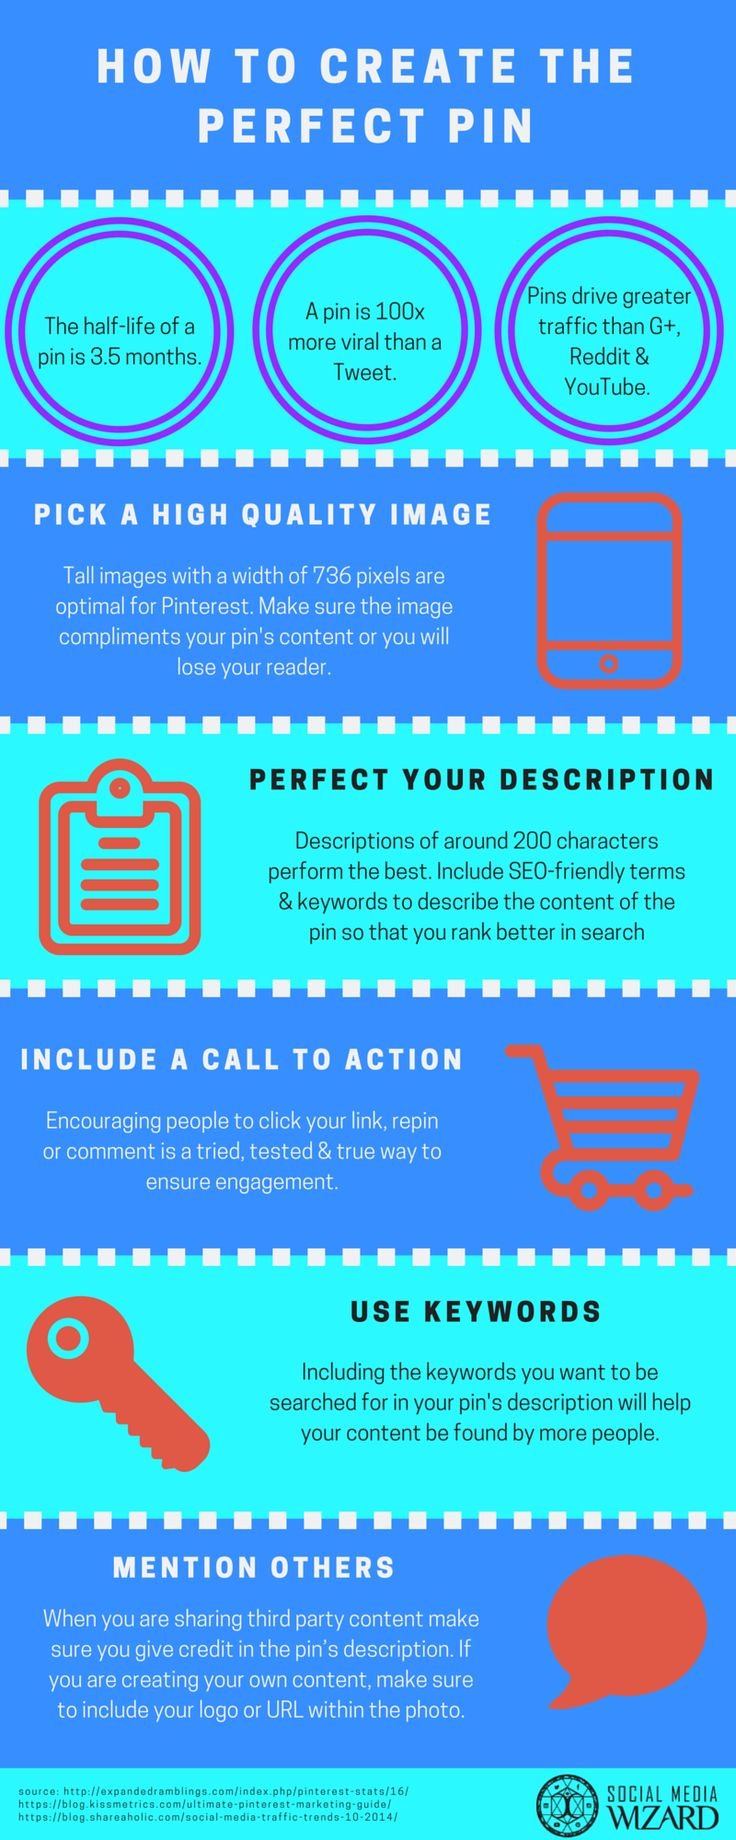 How to Get More Pinterest Followers [INFOGRAPHIC]  When you pin original content you have to make sure it is fully optimized for Pinterest, much like your Pinterest Profile. There is a fine balance between quantity and quality that a successful Pinner has to hold, but luckily there are six parts of a successful pin that we can control to get us the most followers and engagement for our valuable time.